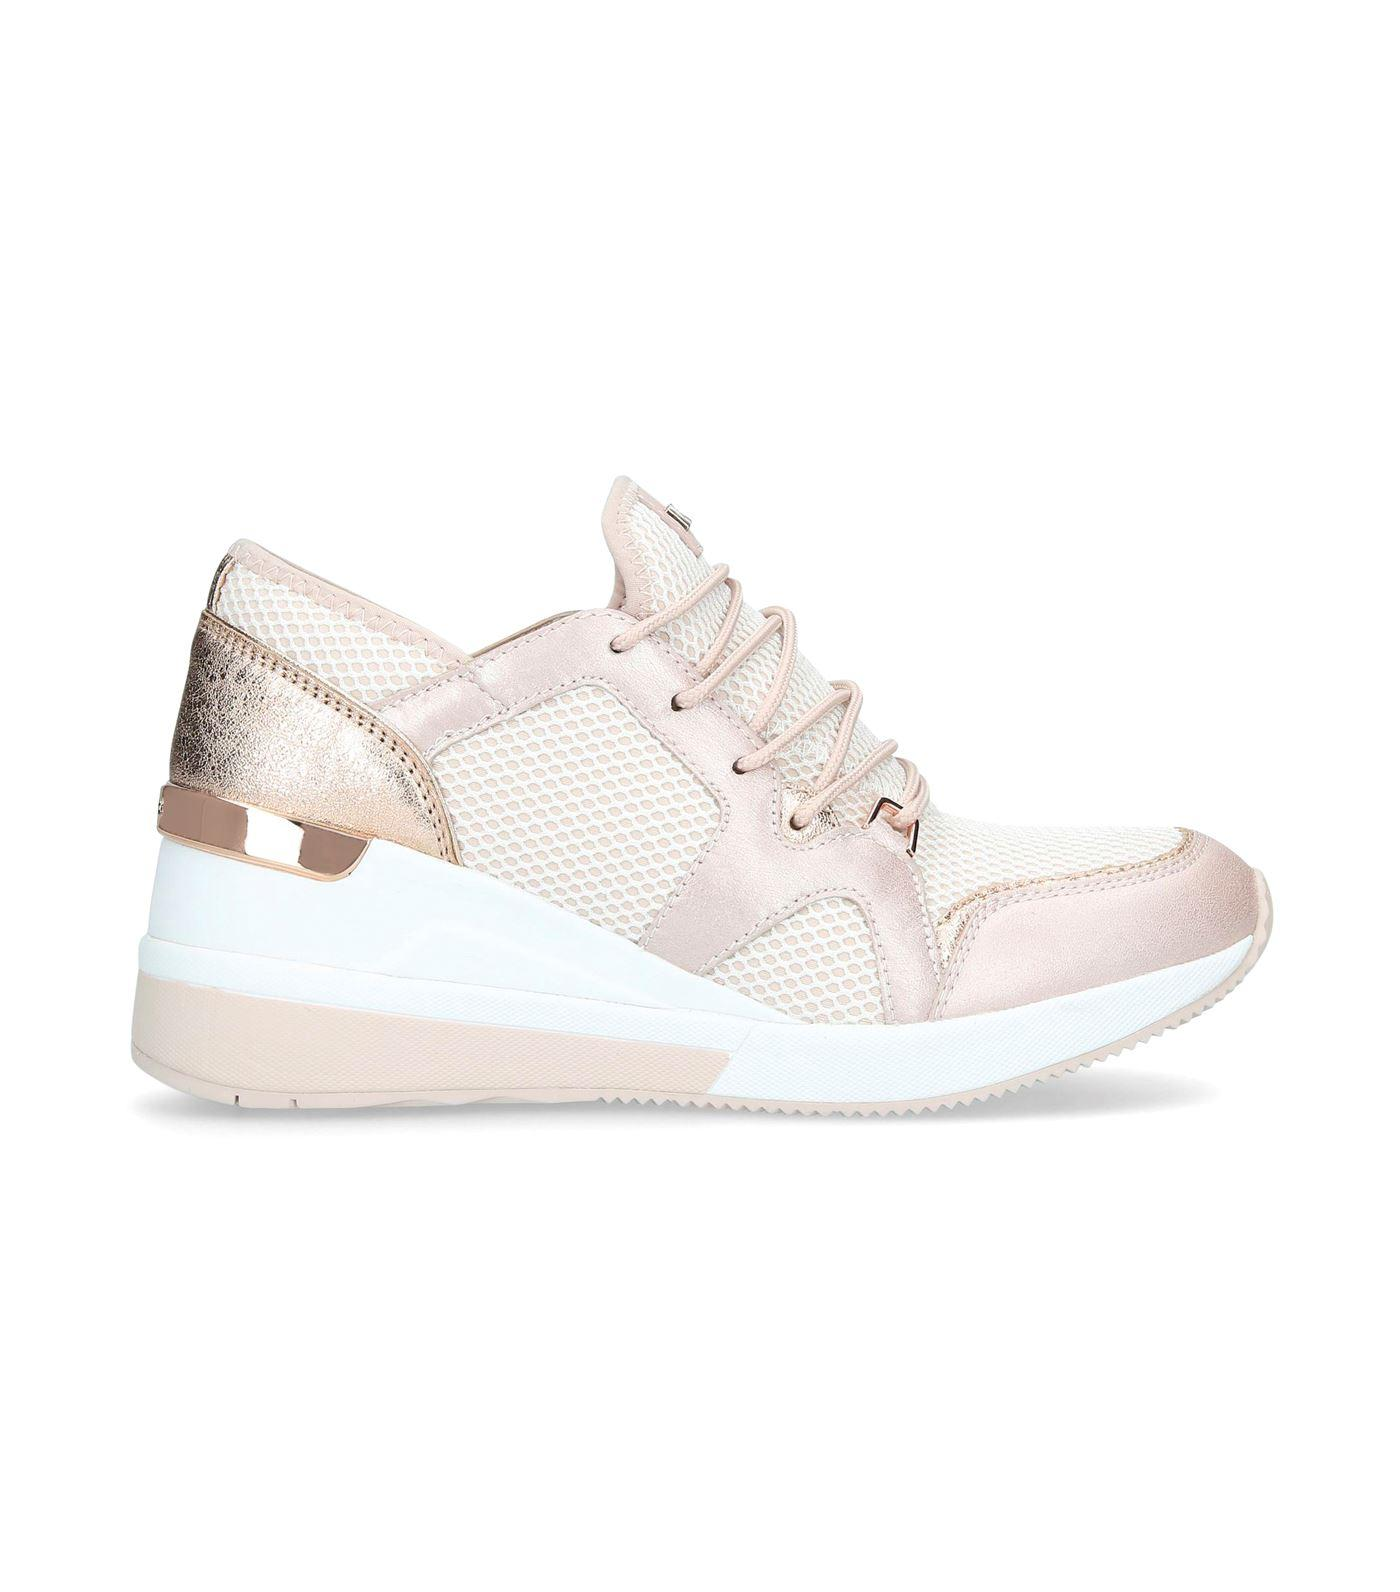 8db6072417d Lyst - MICHAEL Michael Kors Leather Liv Wedge Sneakers in Pink